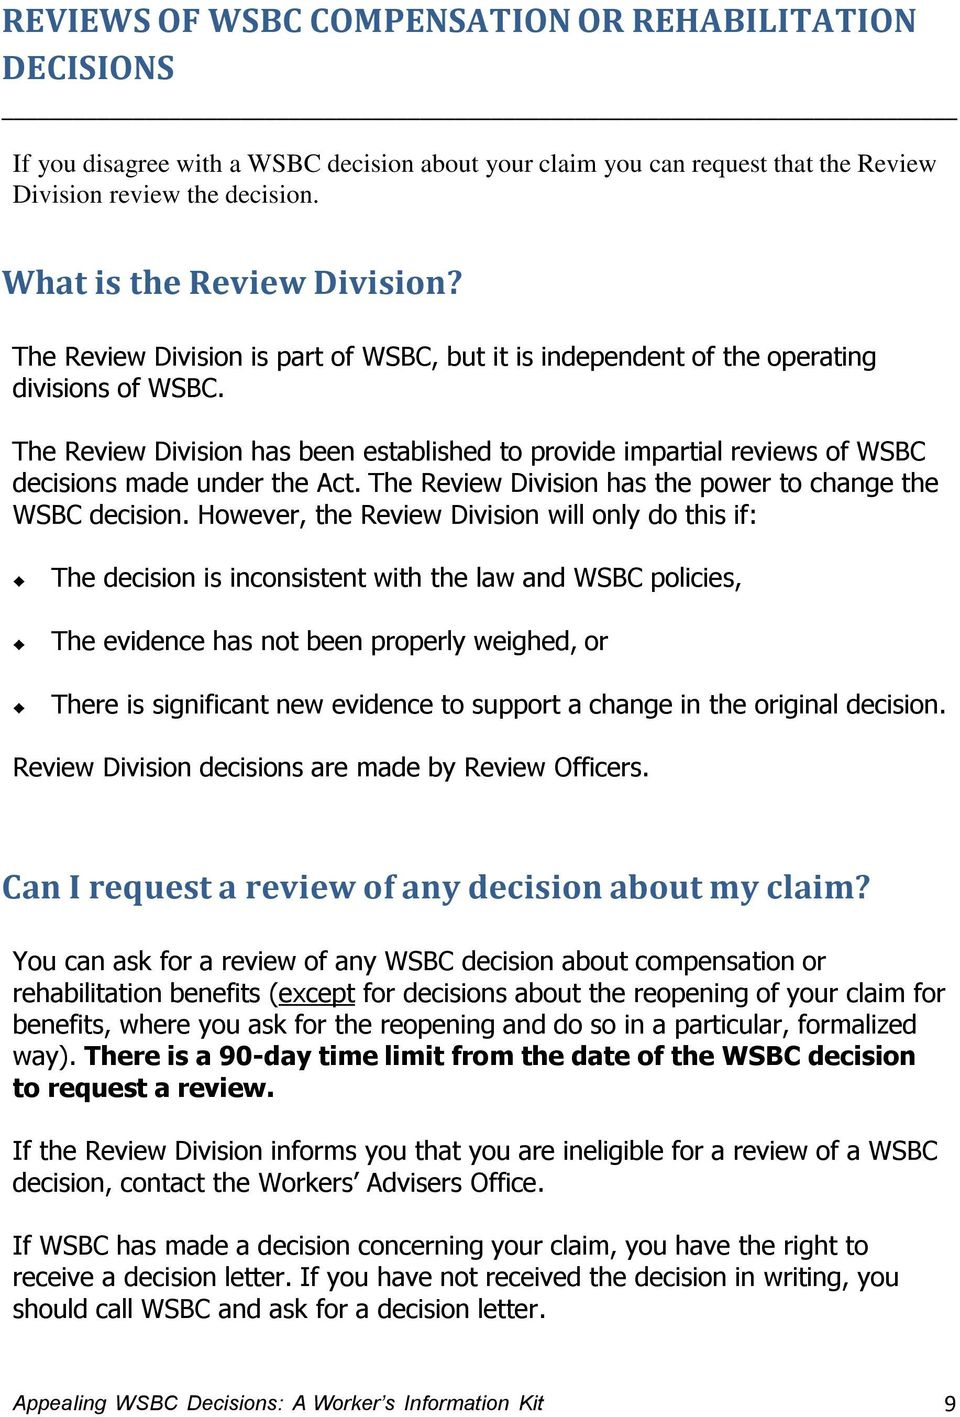 The Review Division has been established to provide impartial reviews of WSBC decisions made under the Act. The Review Division has the power to change the WSBC decision.